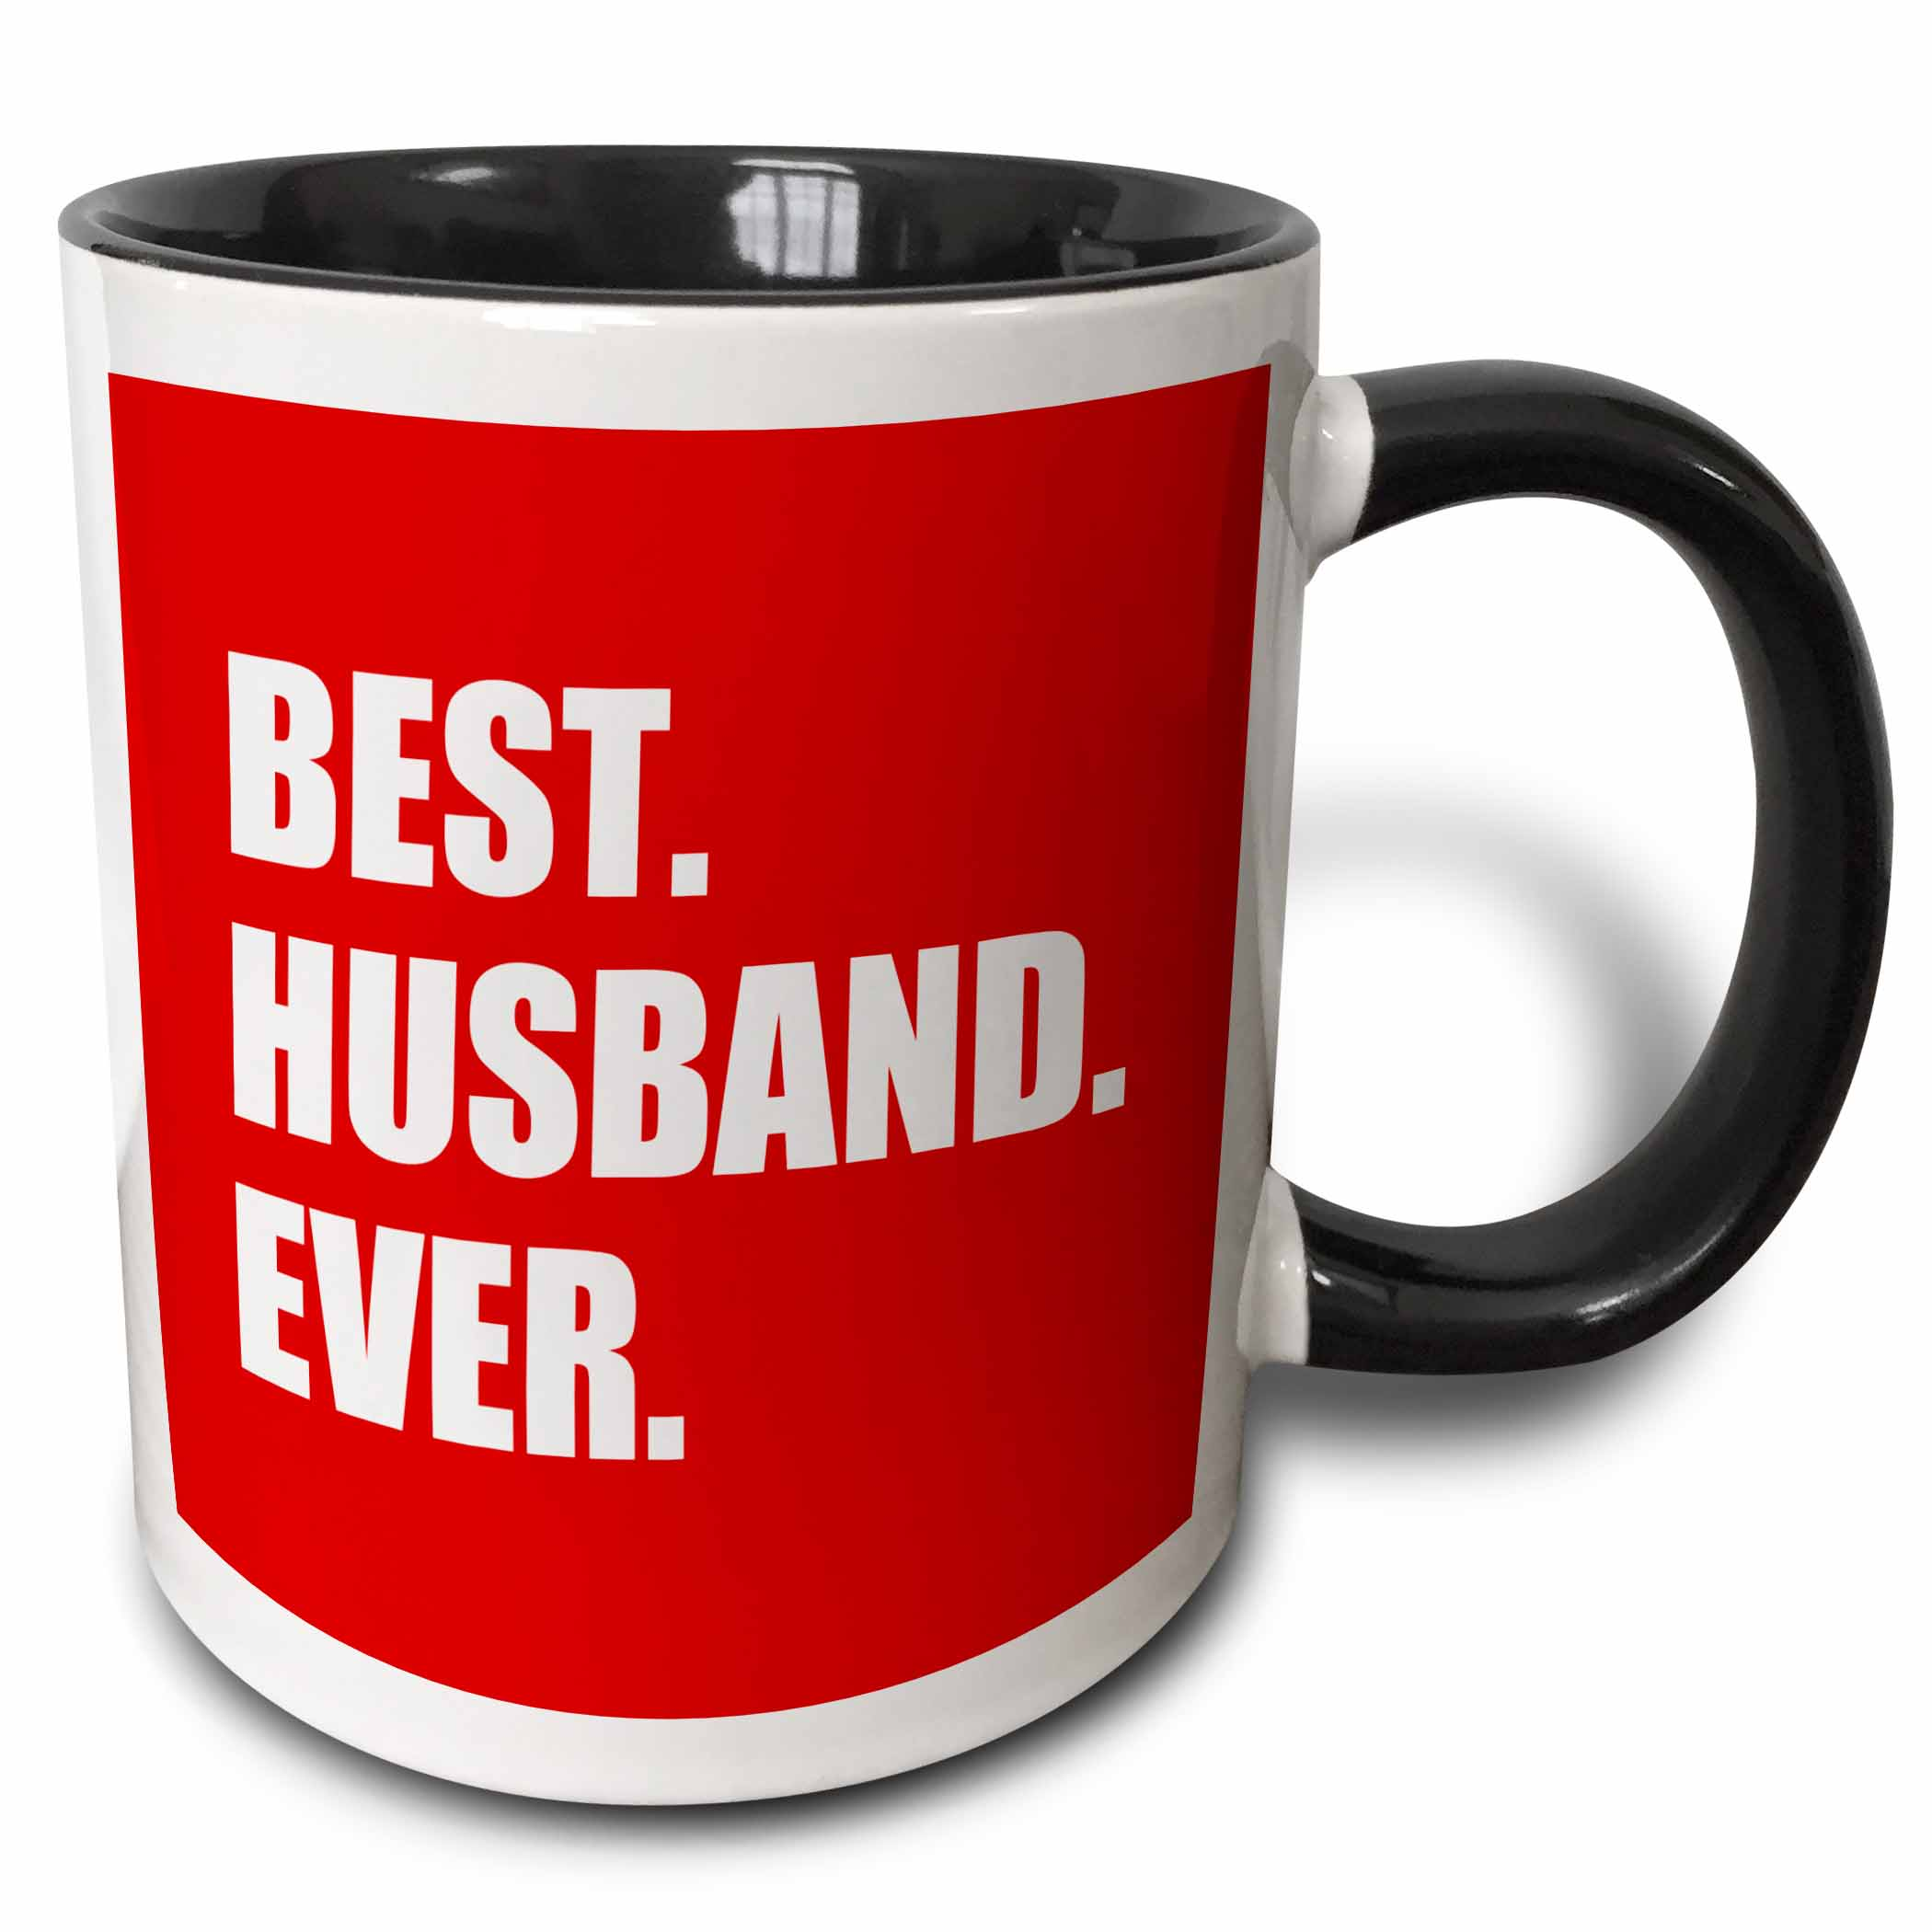 3dRose Red Best Husband Ever - white text anniversary romantic gift for him, Two Tone Black Mug, 11oz